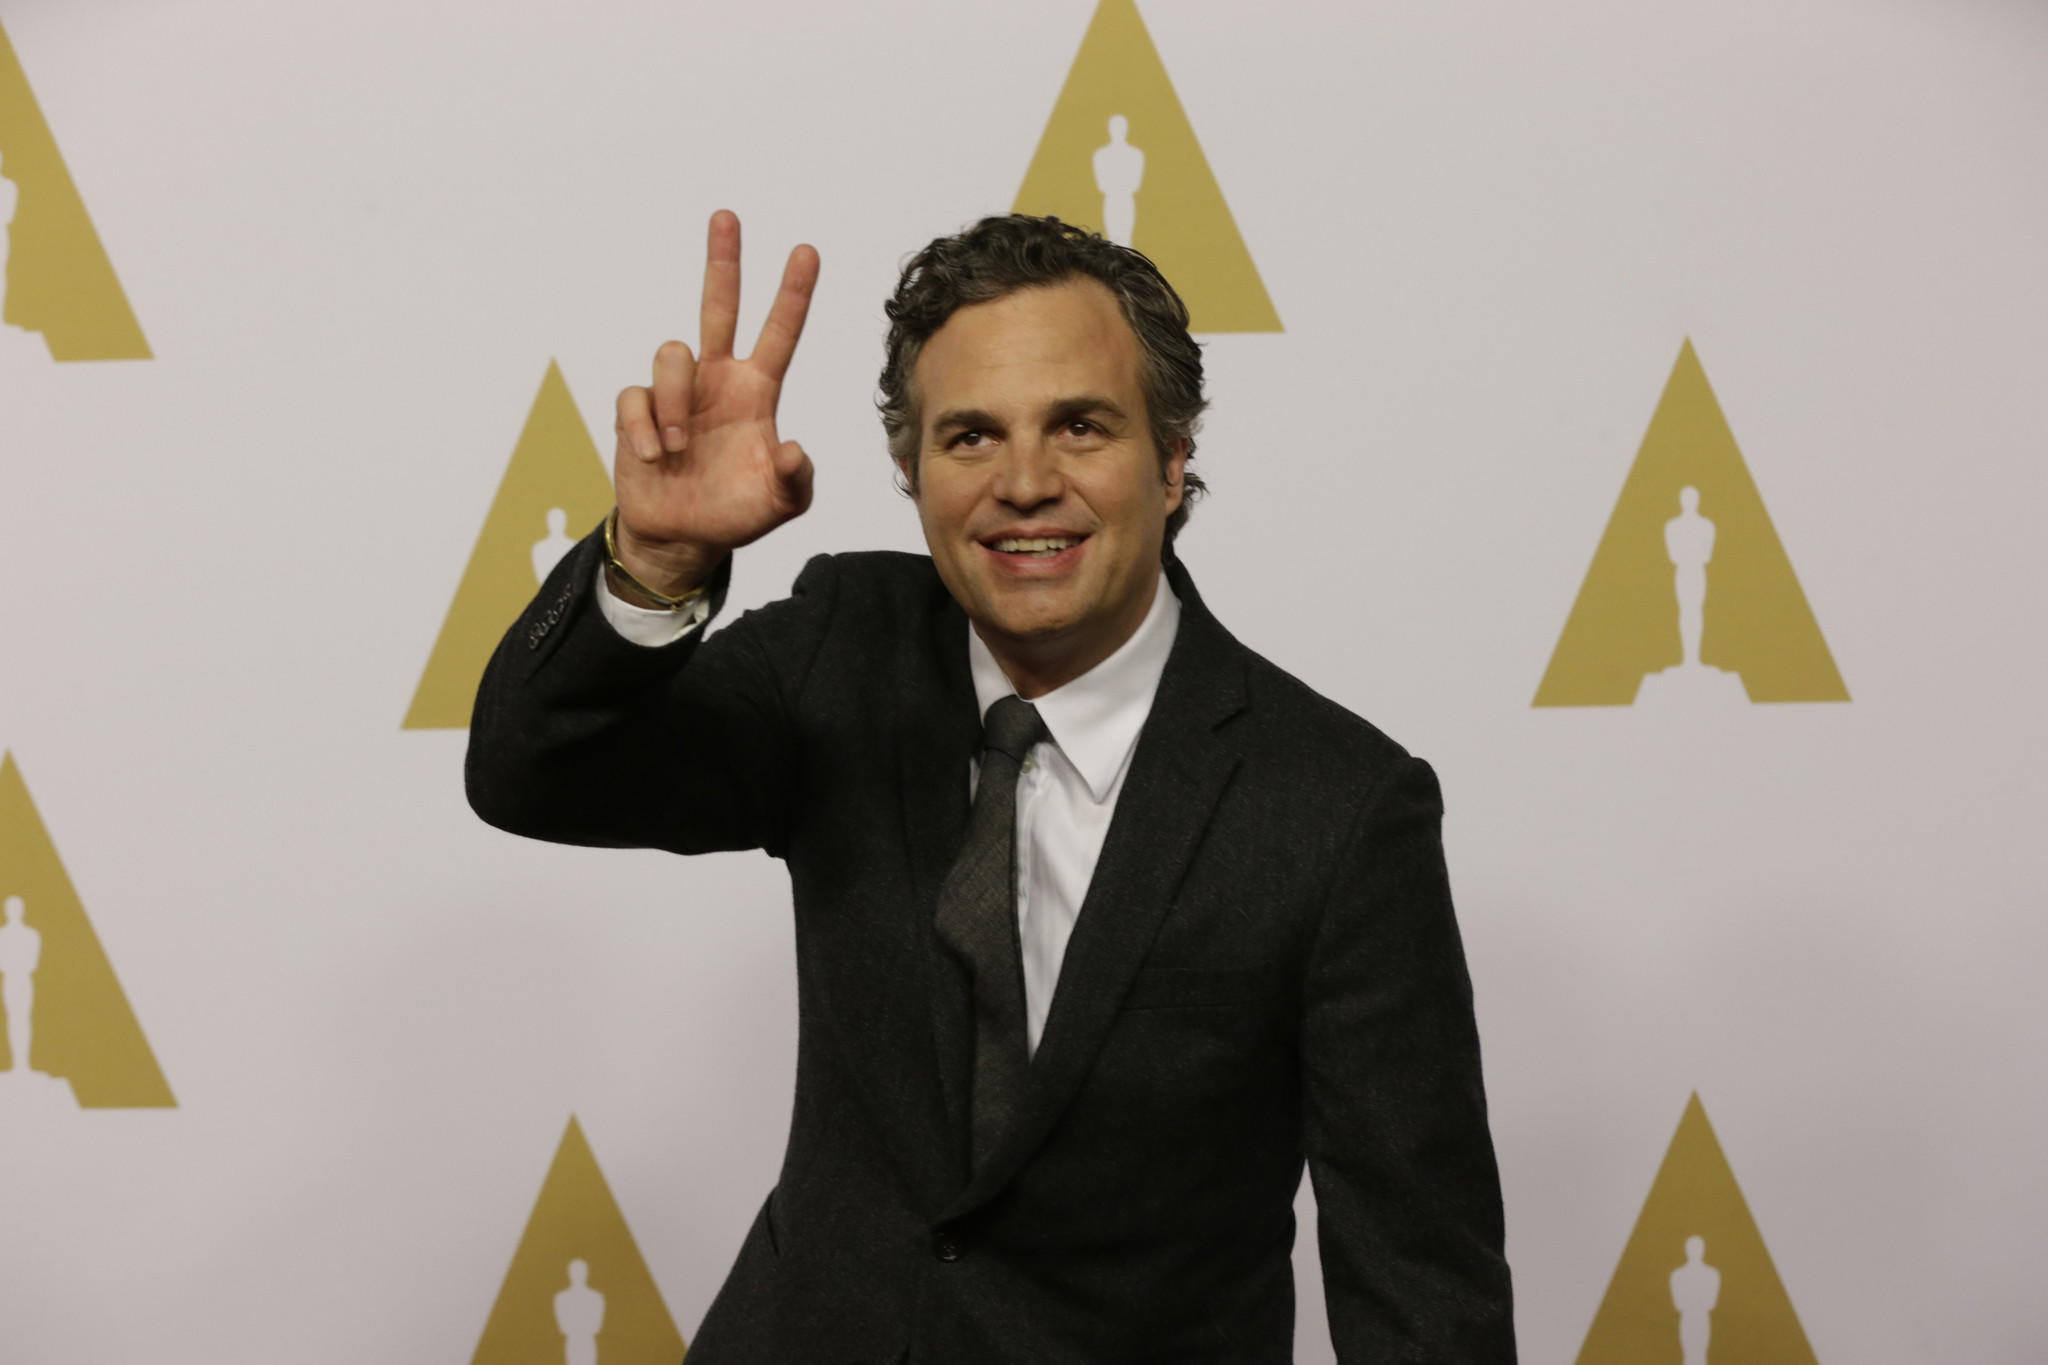 Mark Ruffalo has joined activists demonstrating against white supremacy. (Robert Gauthier / Los Angeles Times)